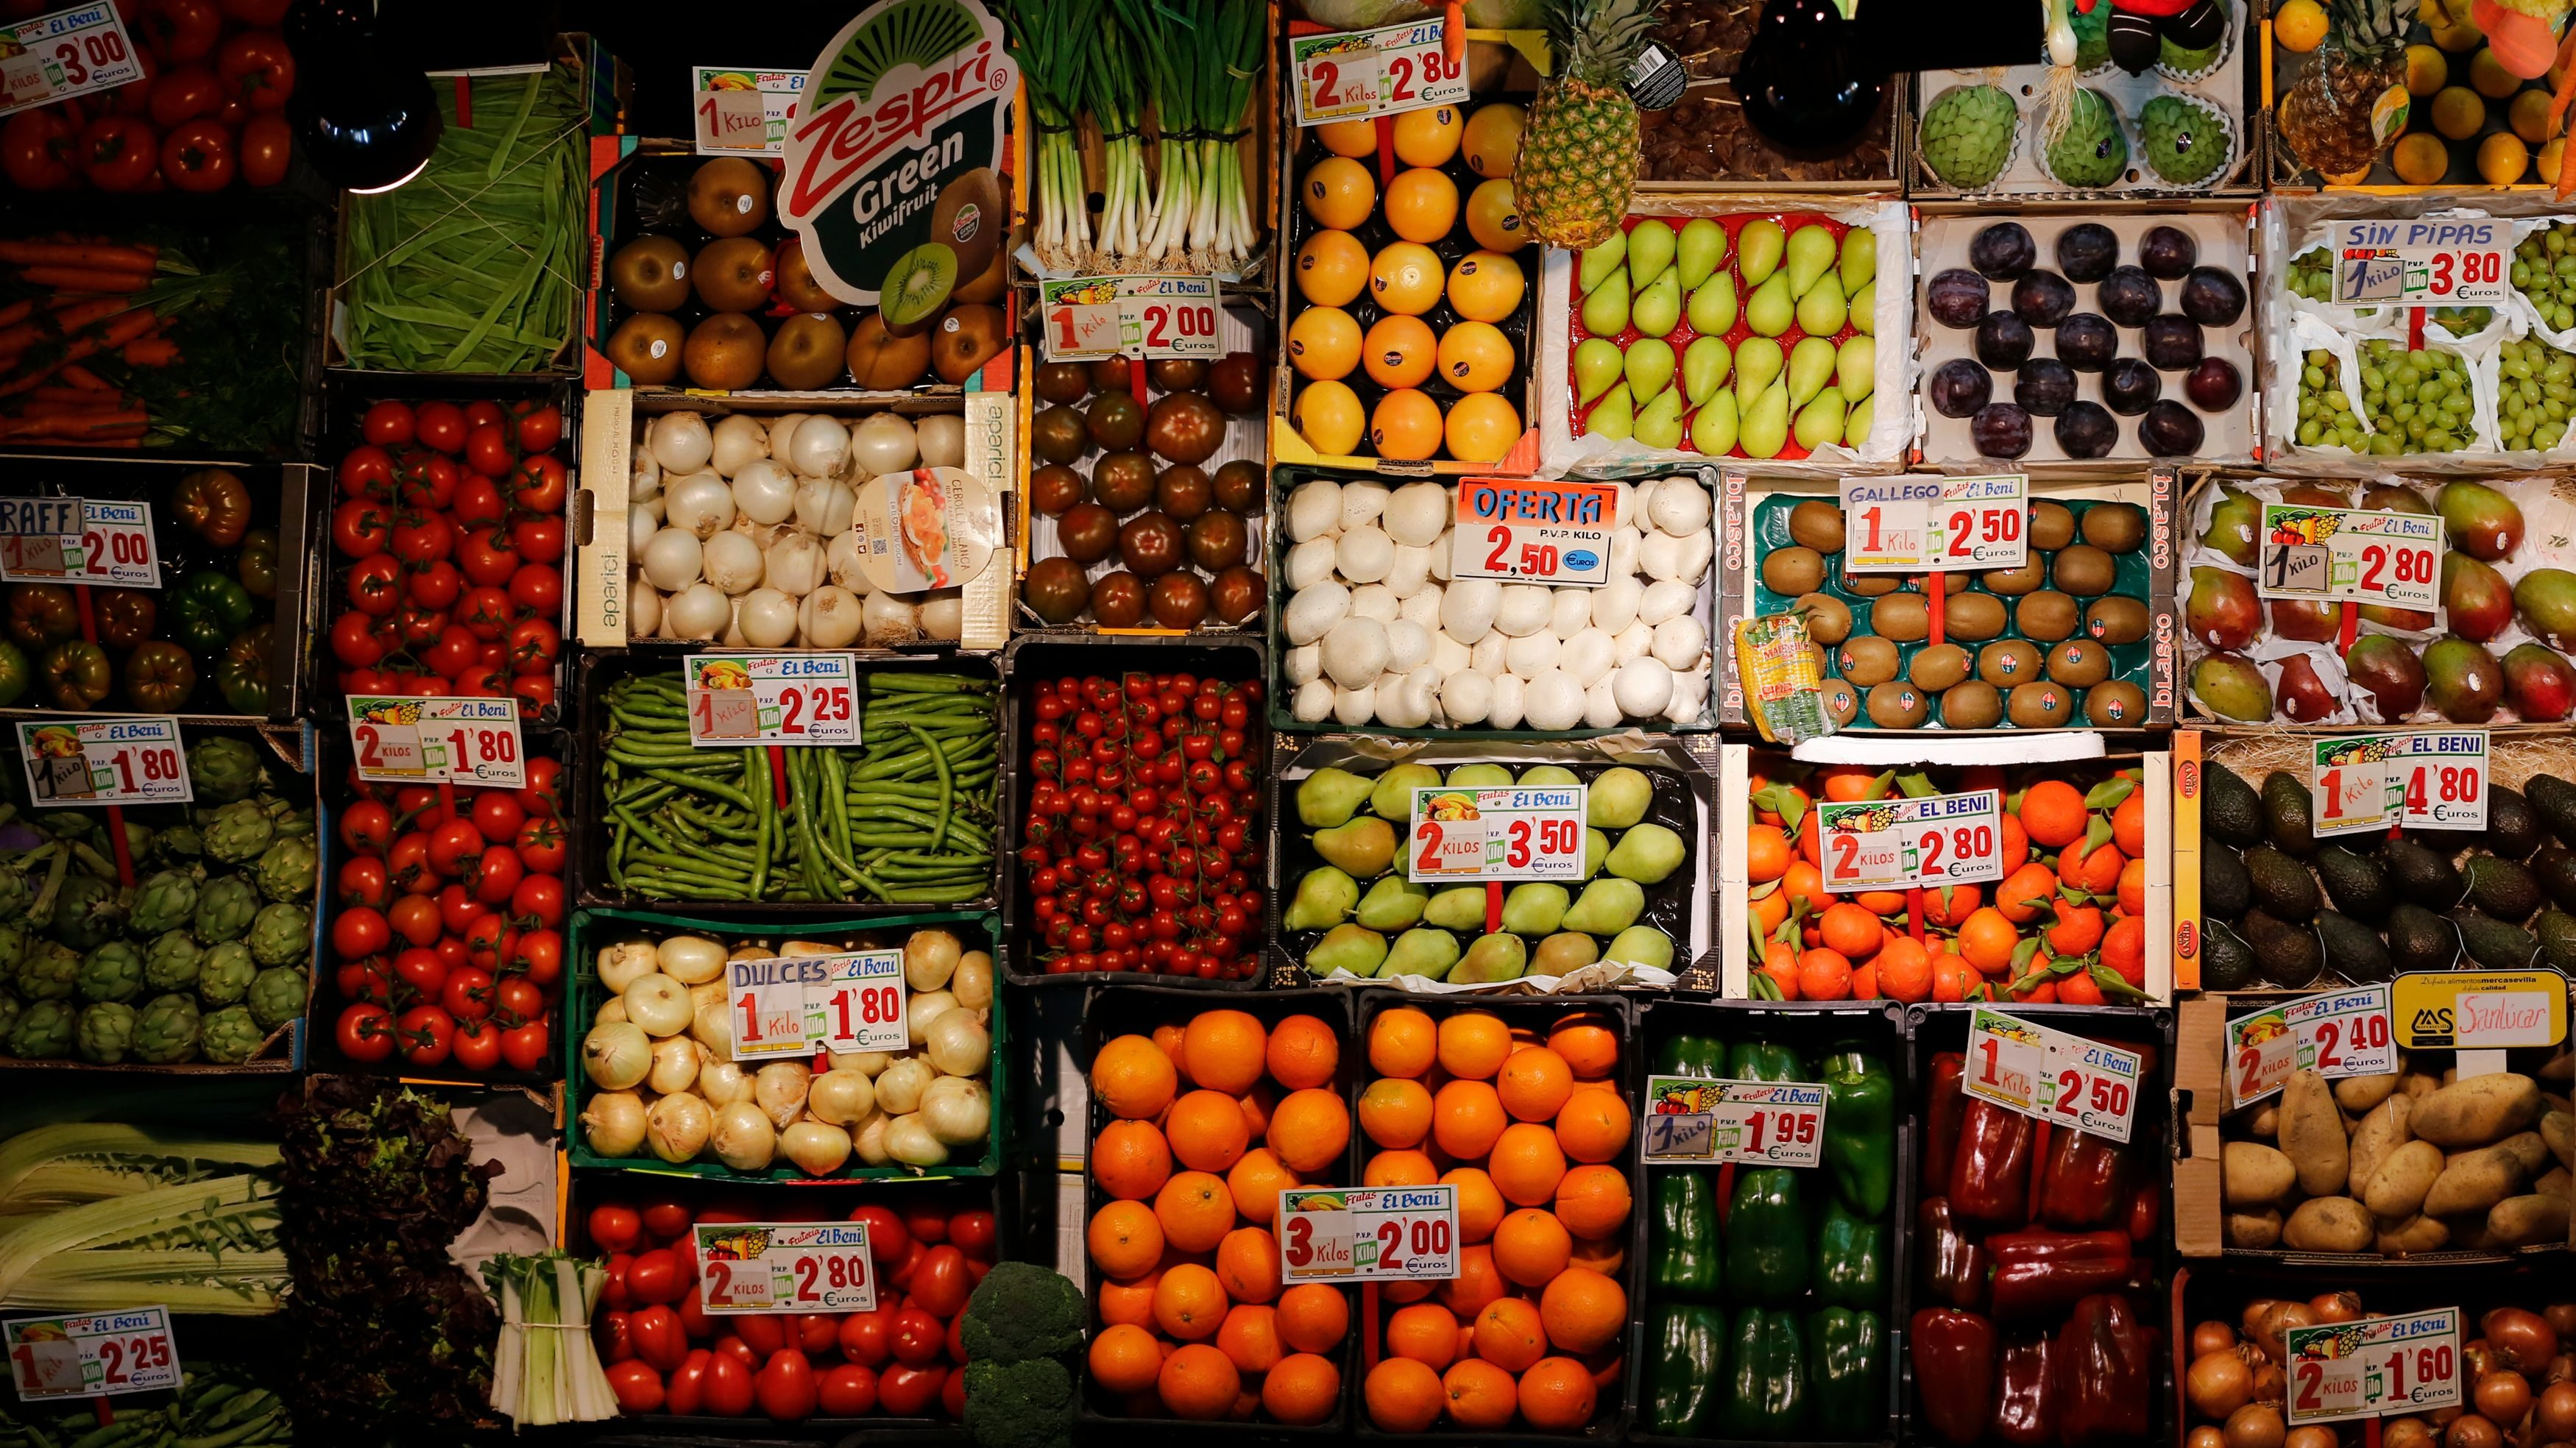 Fruits and vegetables on display to be sold at a shop in Seville.